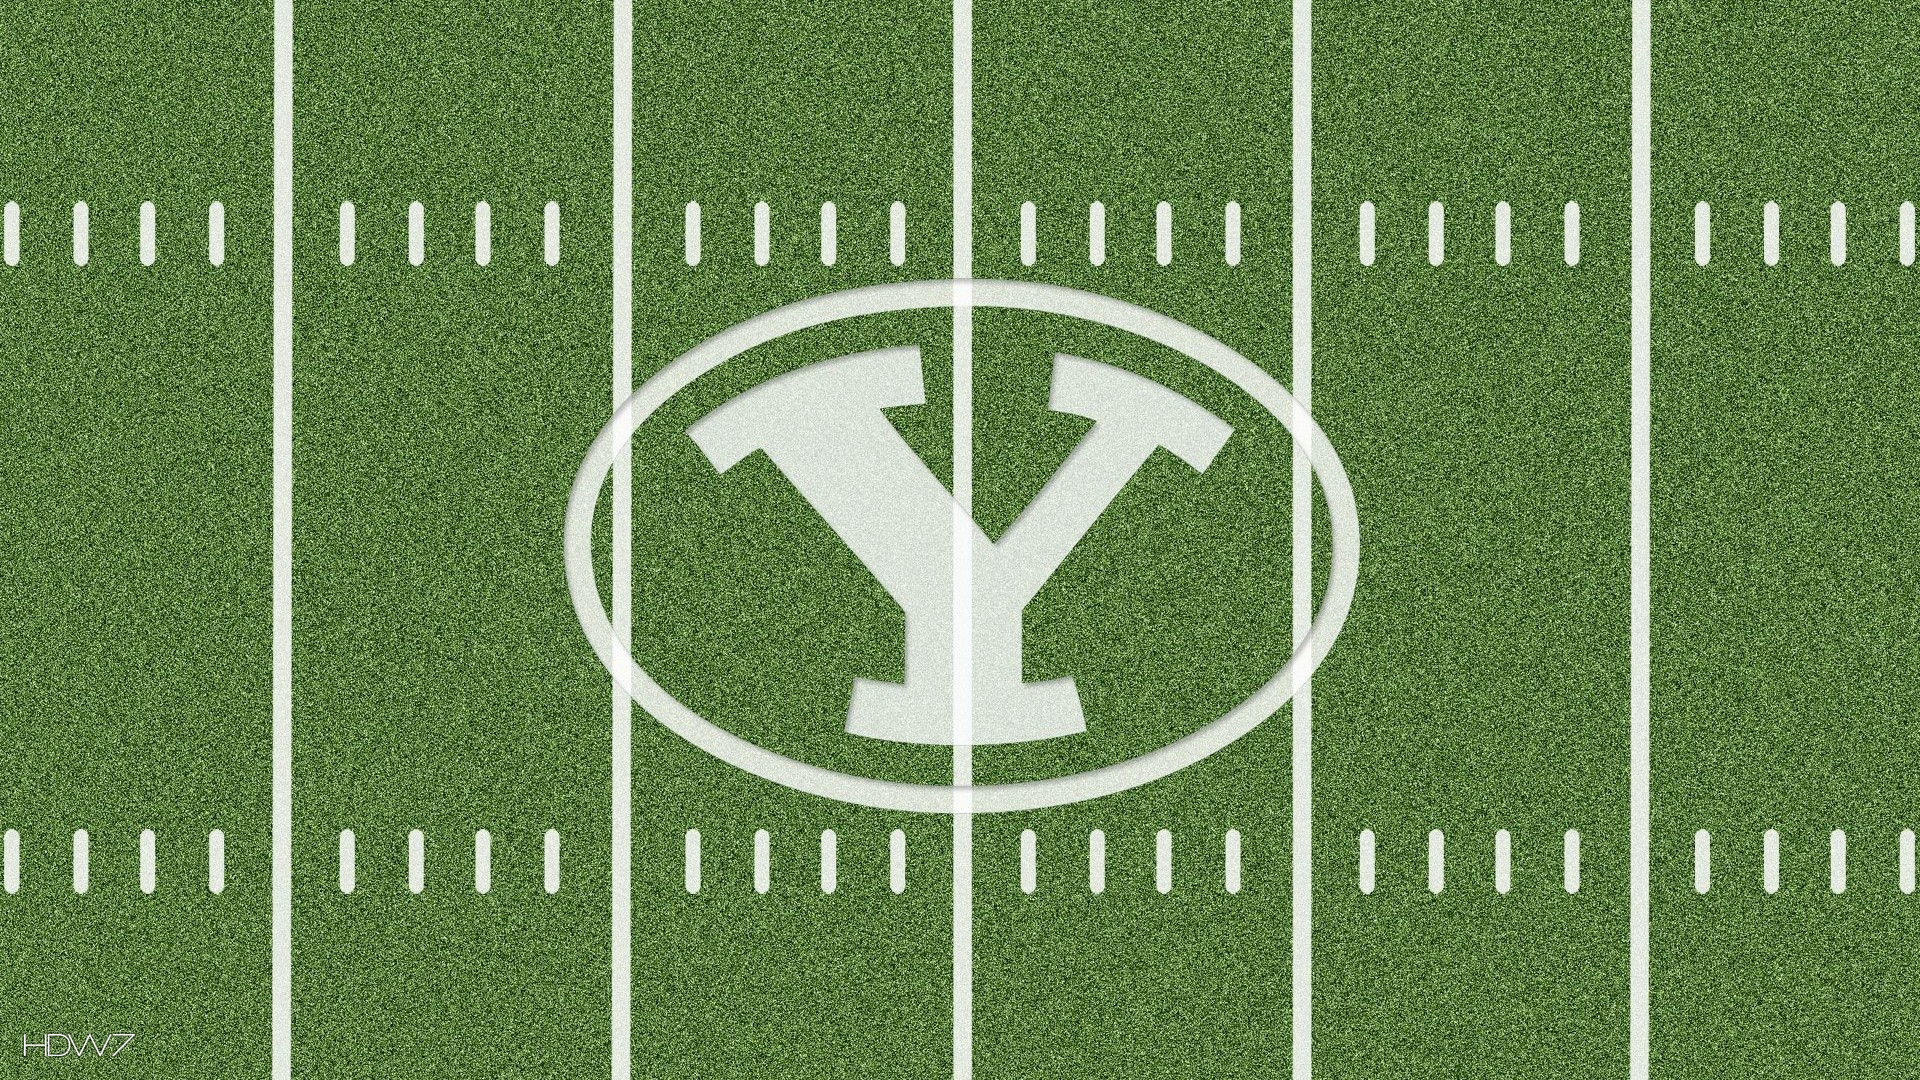 byu cougars logo on football field 1080p